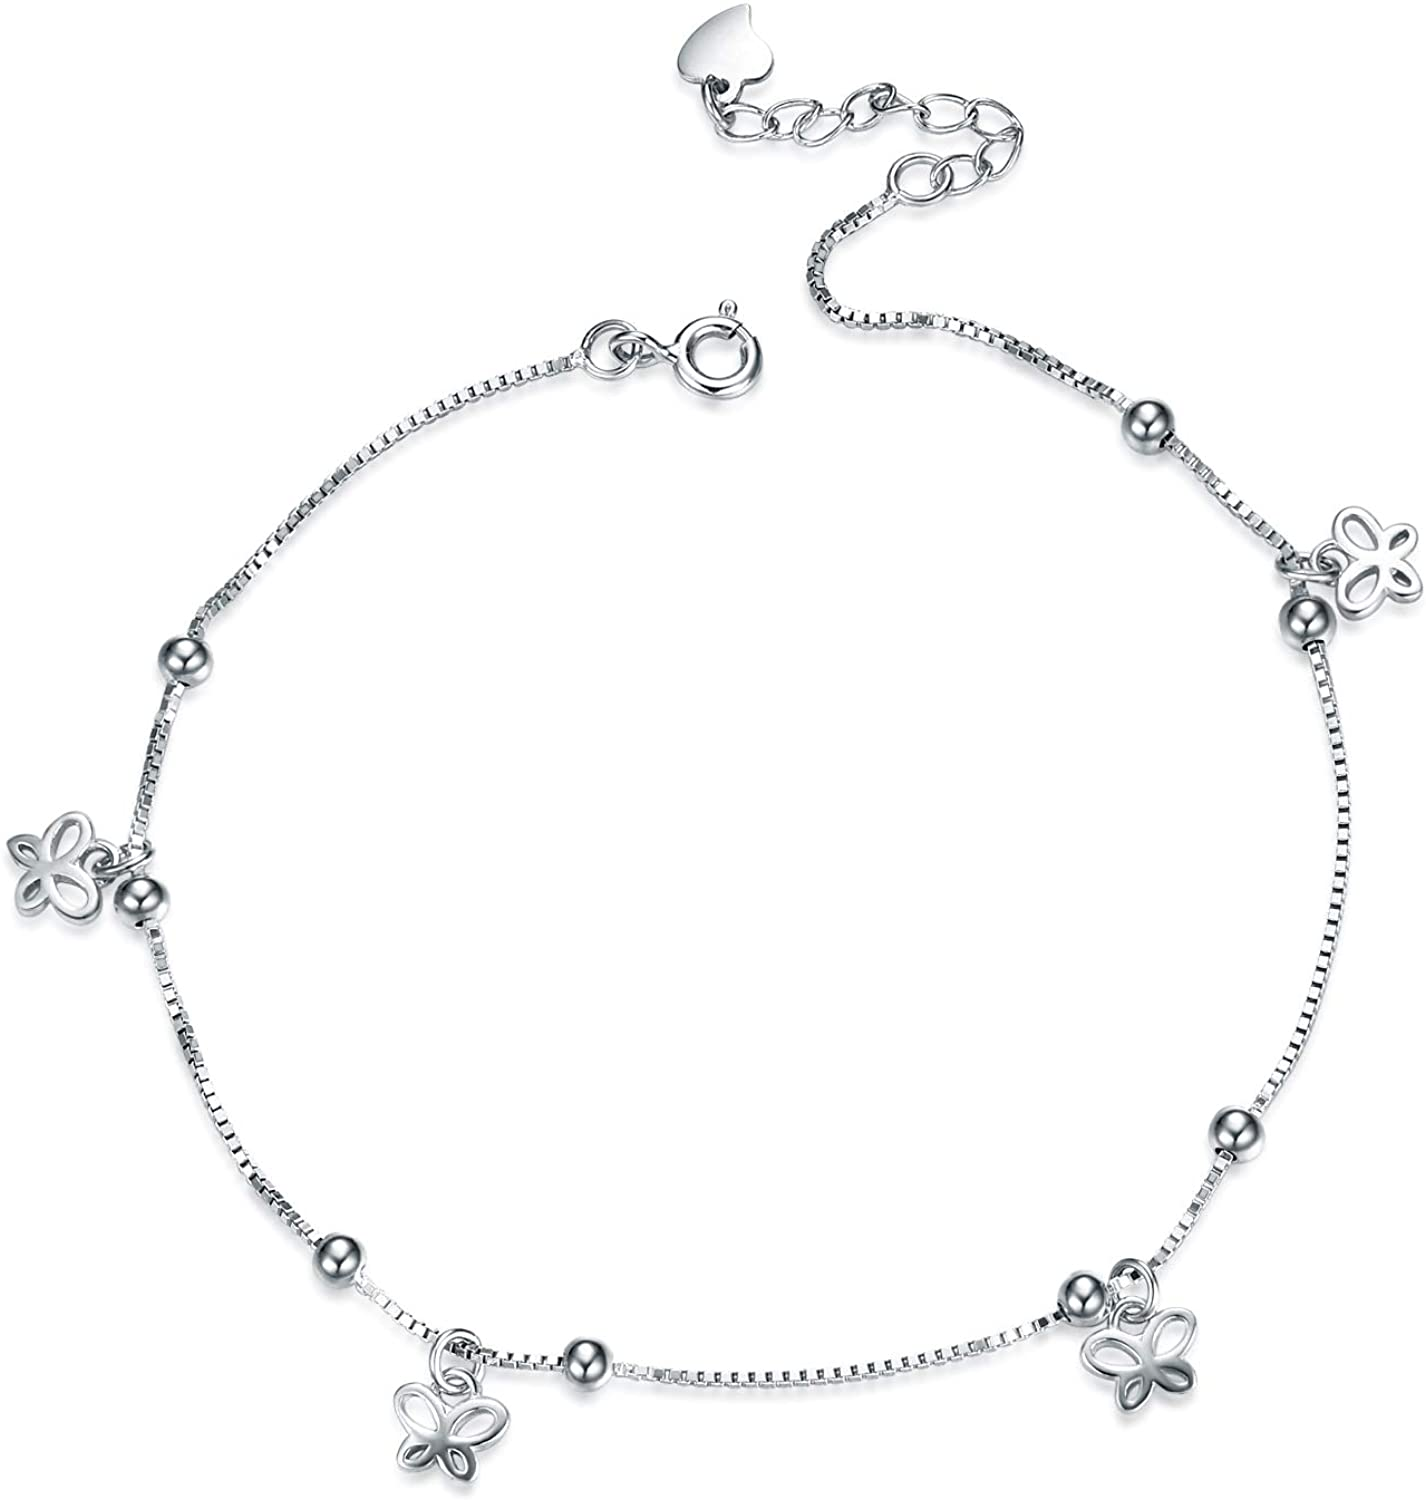 VENACOLY Butterfly Anklets Sterling Silver 925 for Woman Beach Charm Foot Chains Adjustable Jewelry for Women